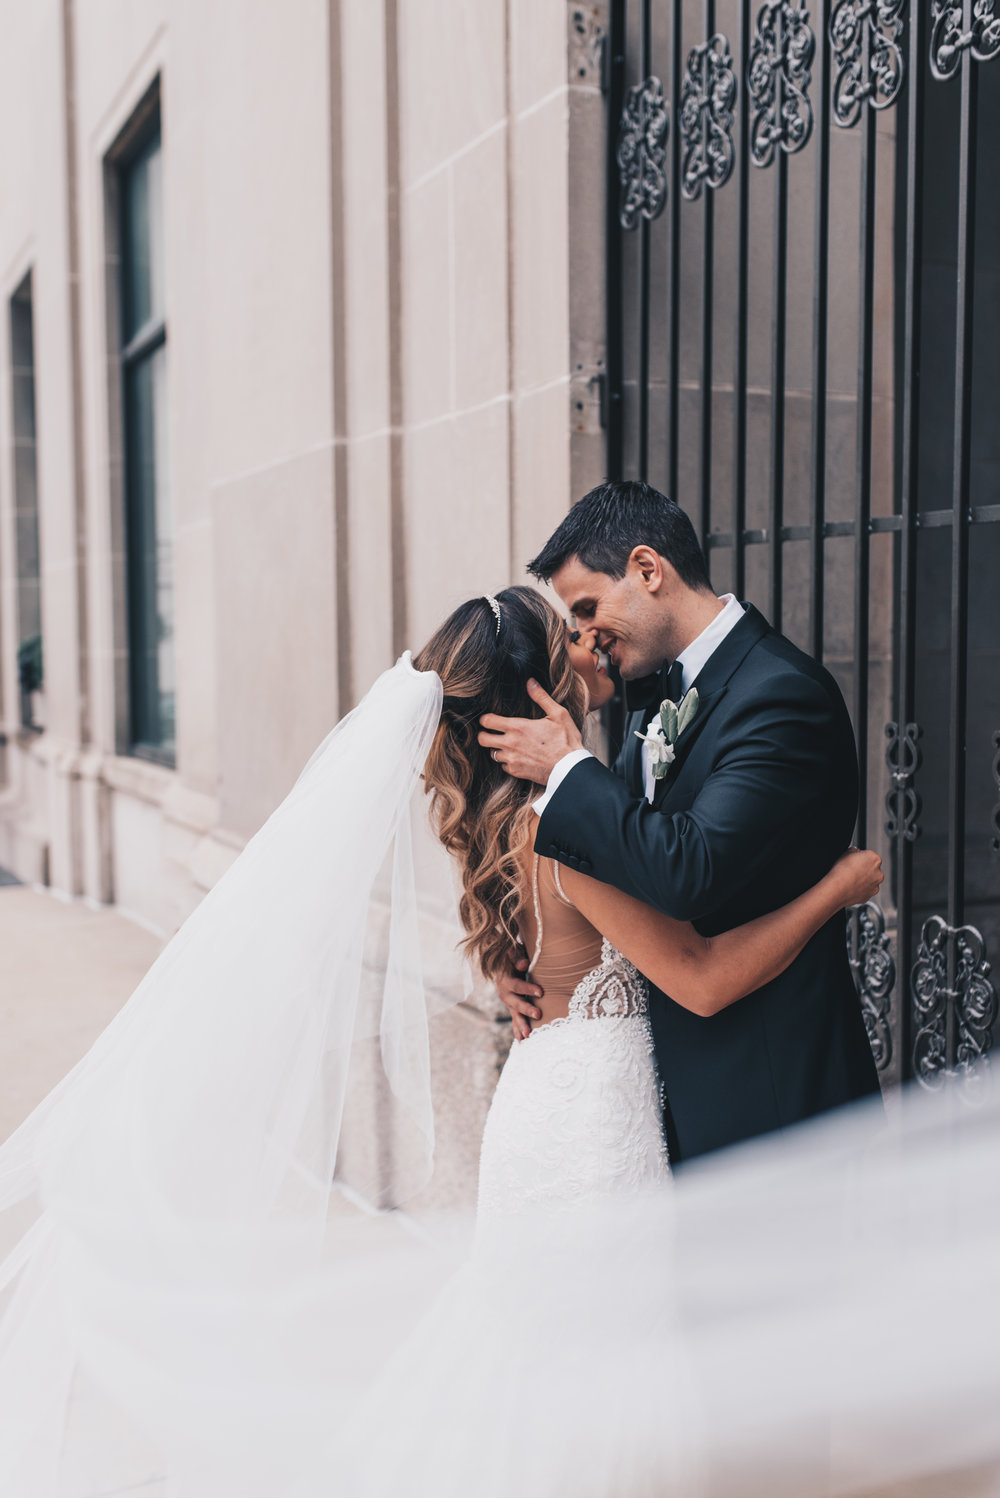 Union Station, Union Station Wedding, Chicago Wedding, Chicago Bridal Photos